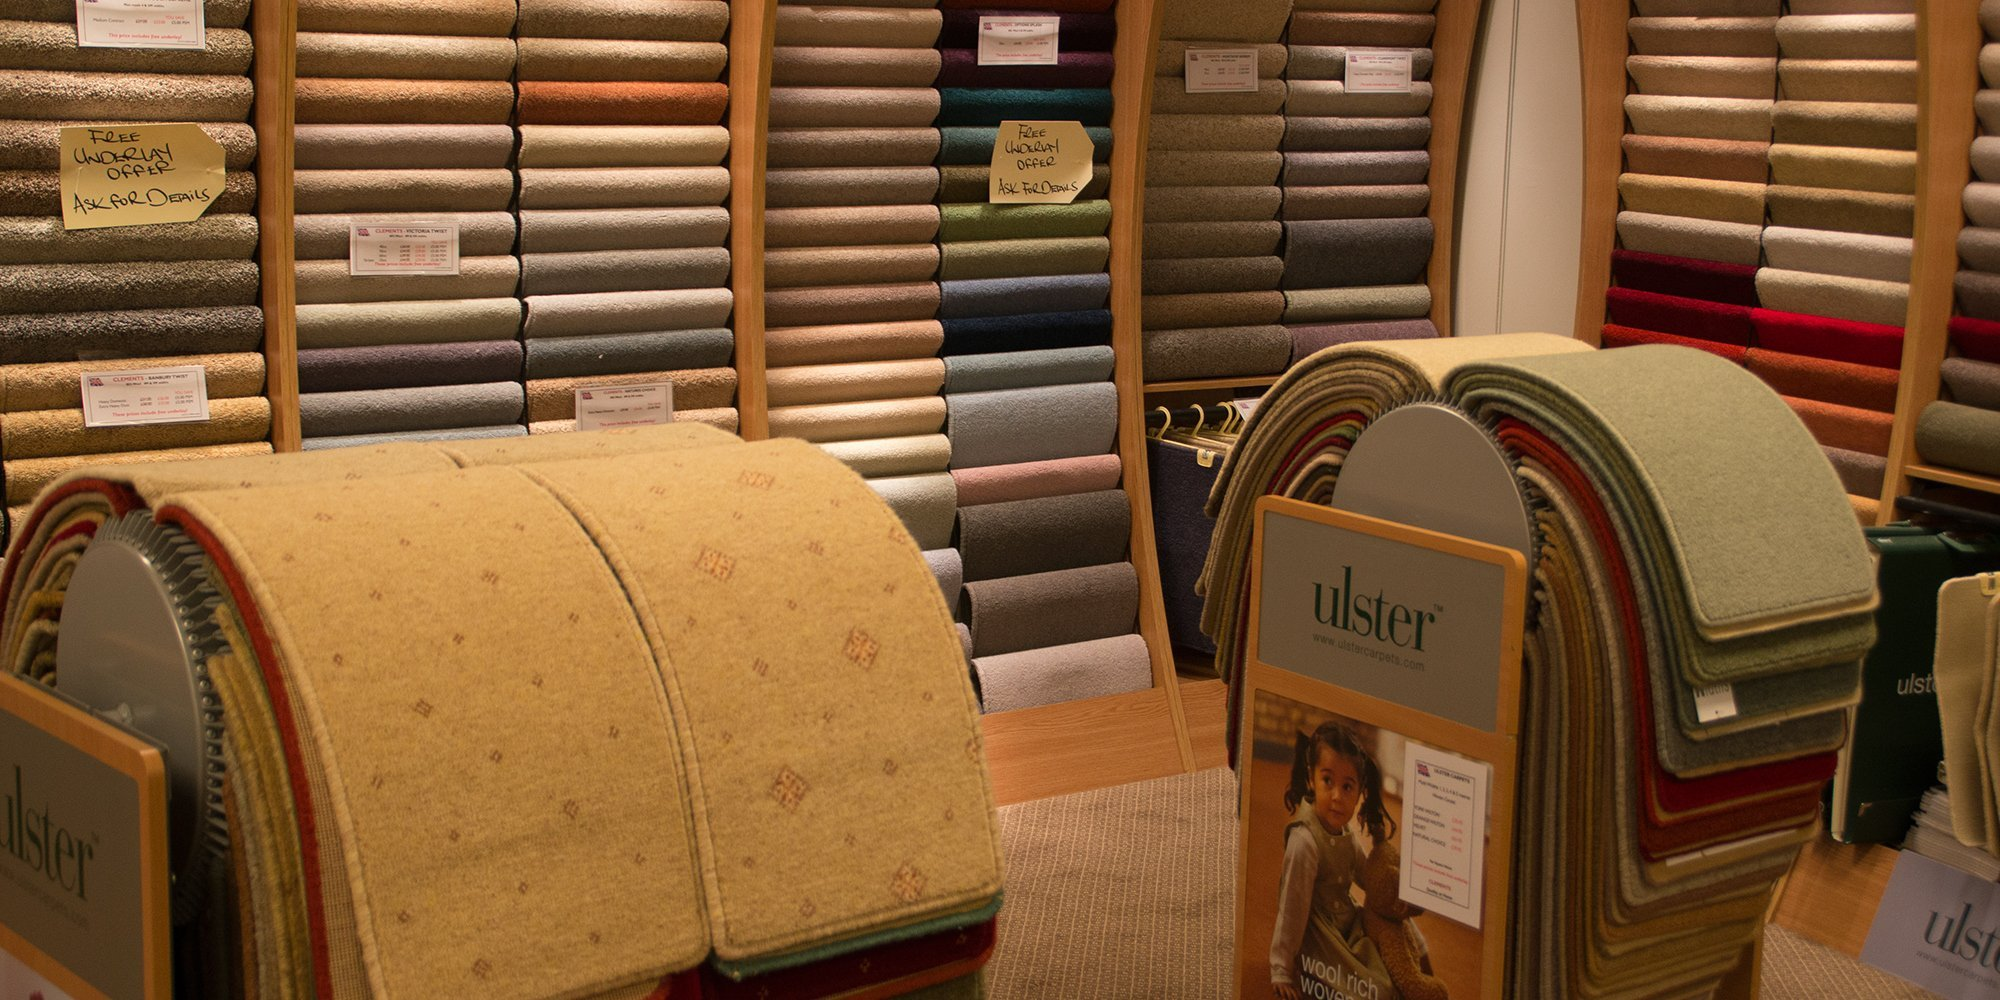 View of a flooring fabric available at Clements in Watford